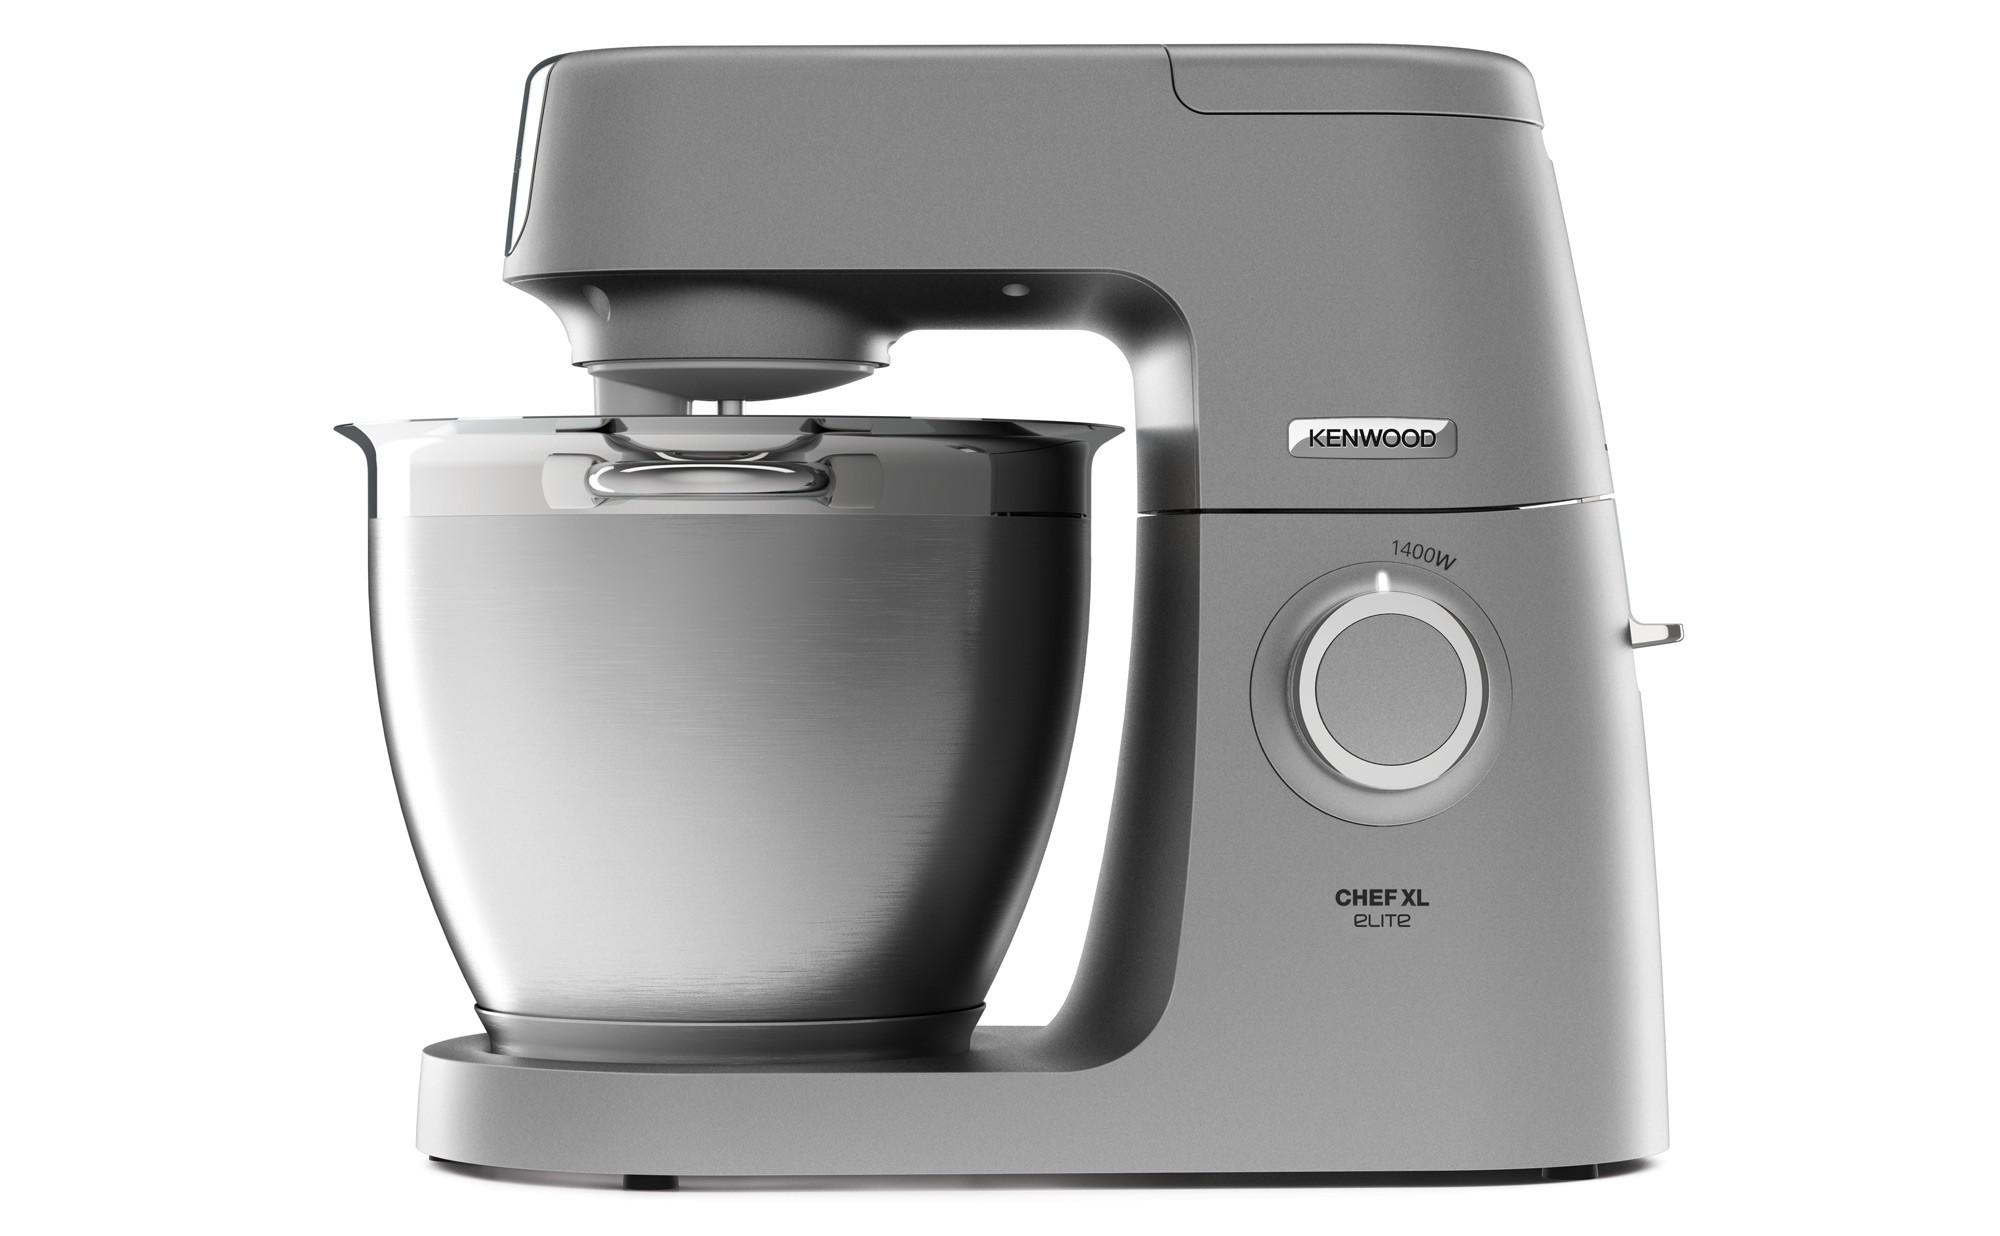 Kenwood robot chef xl elite for Robot de cuisine kenwood